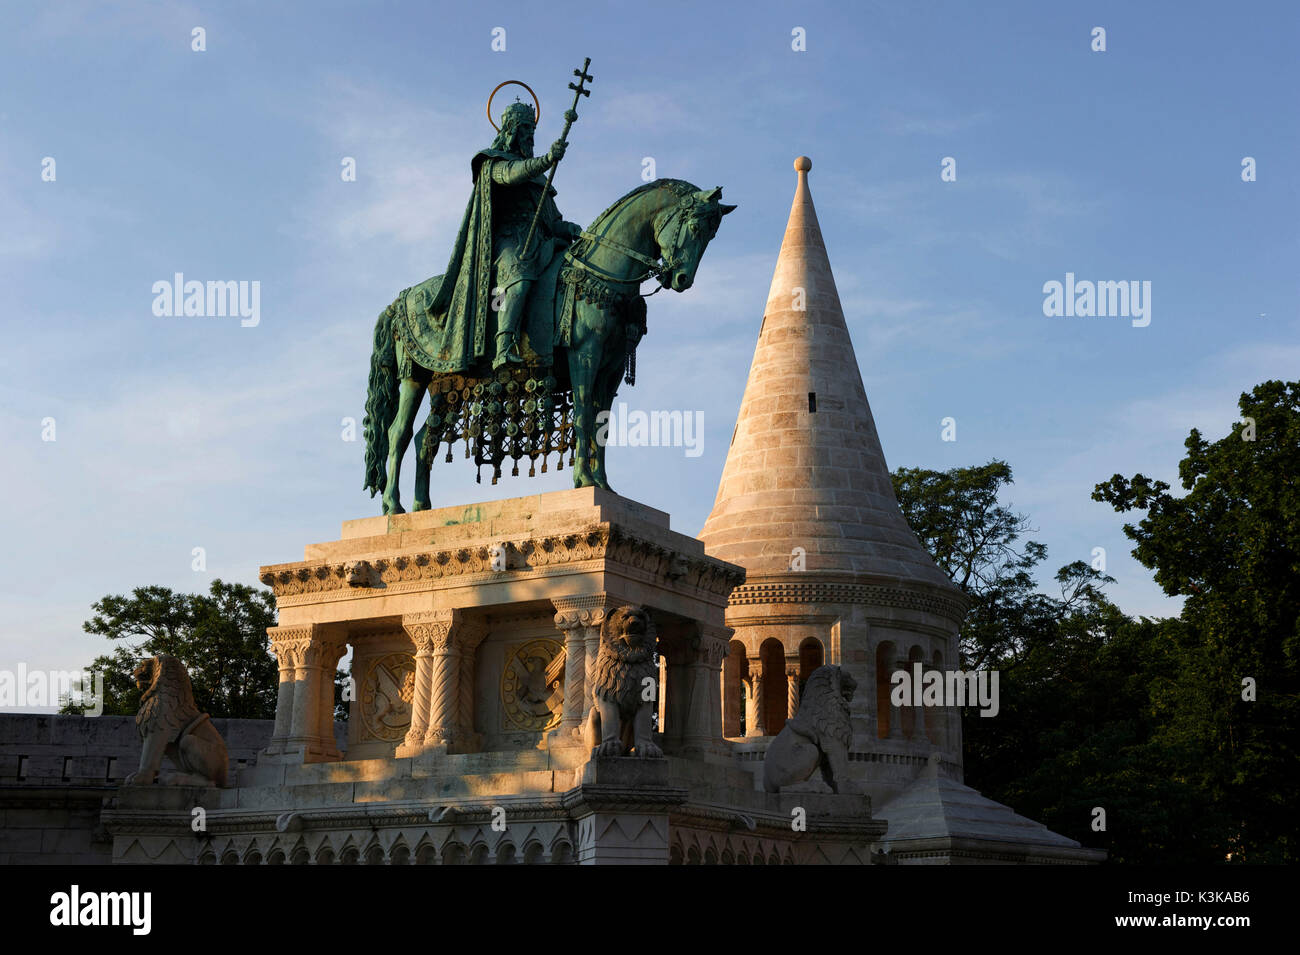 Hungary, Budapest, Fishermans Bastion with the equestrian Memorial of Saint Stephen King of Ungary, located in the Stock Photo